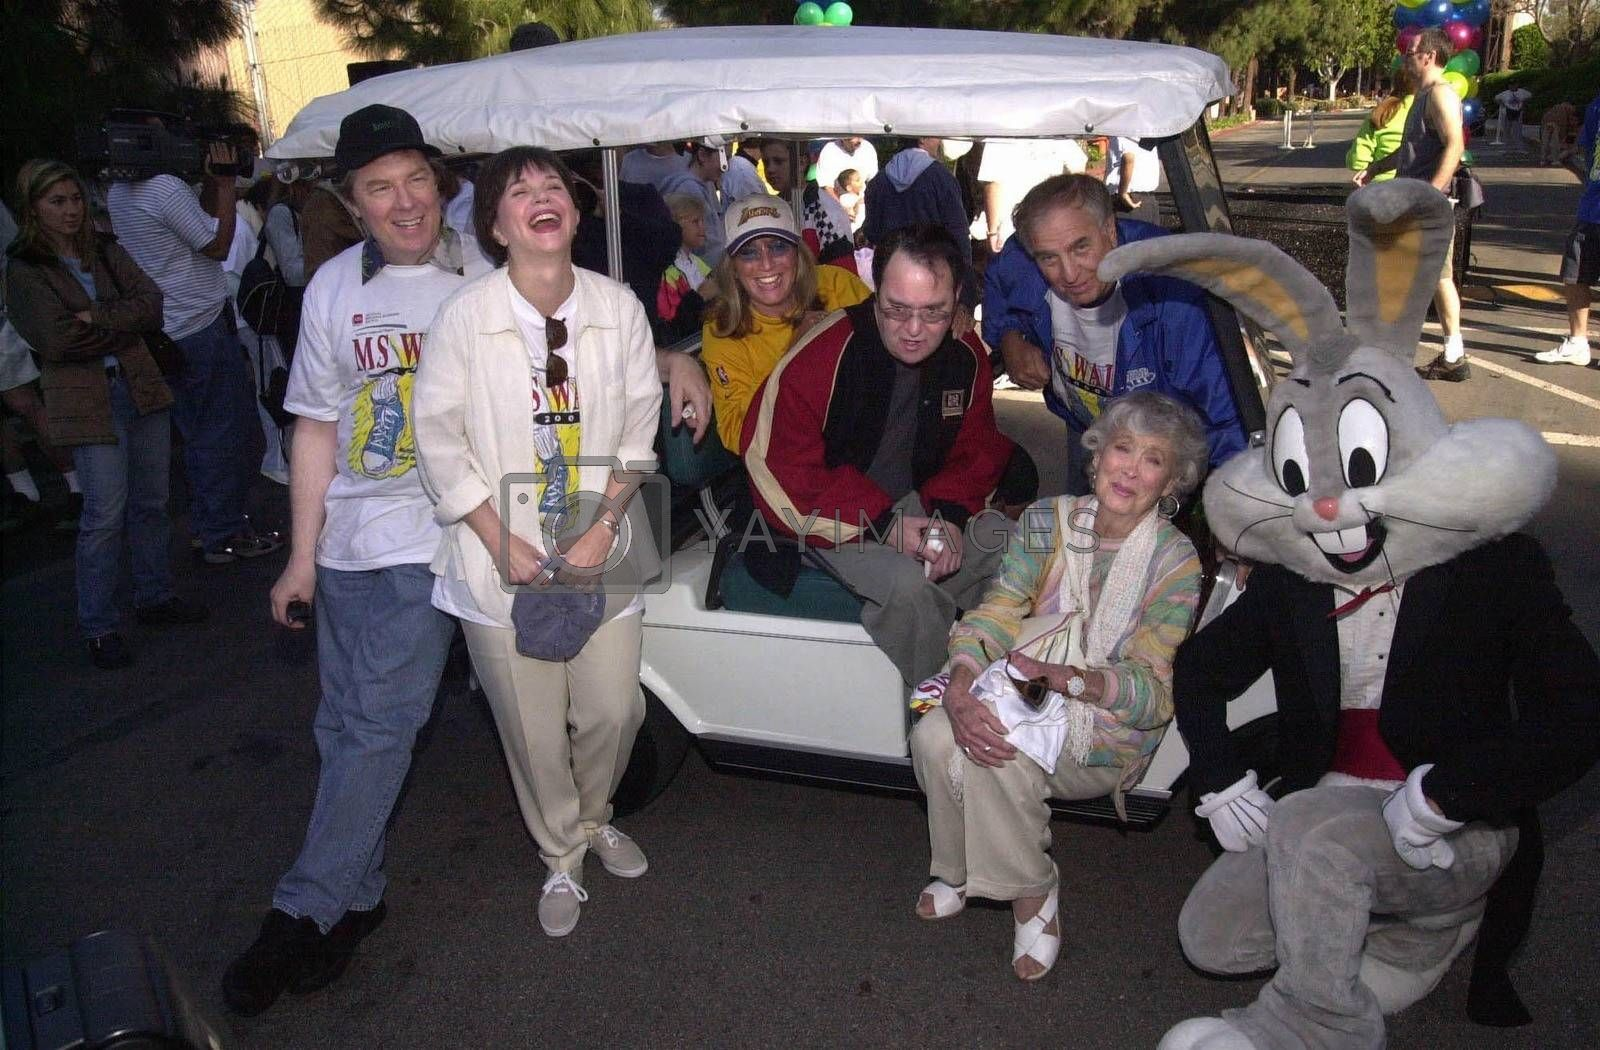 """Cast of Laverne and Shirley at the MS Walk 2000, where the cast of """"Laverne and Shirley"""" reunited. Burbank, 04-09-00"""